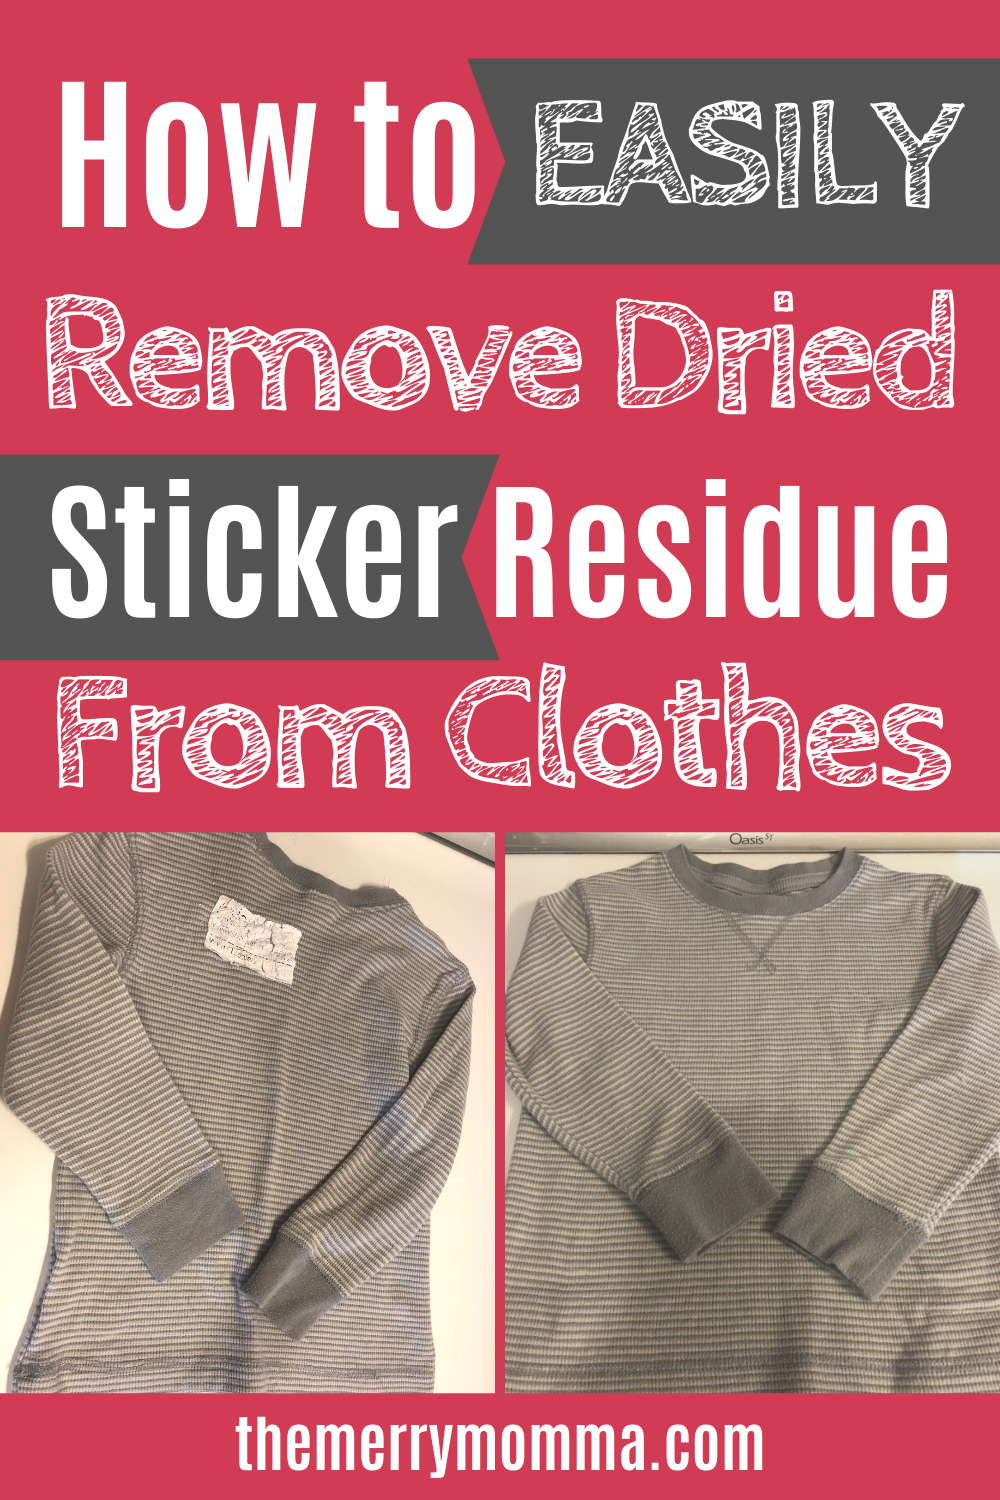 How To Remove Sticker Residue From Clothes In 30 Seconds Or Less The Merry Momma In 2020 Remove Sticker Residue Sticker Removal How To Remove